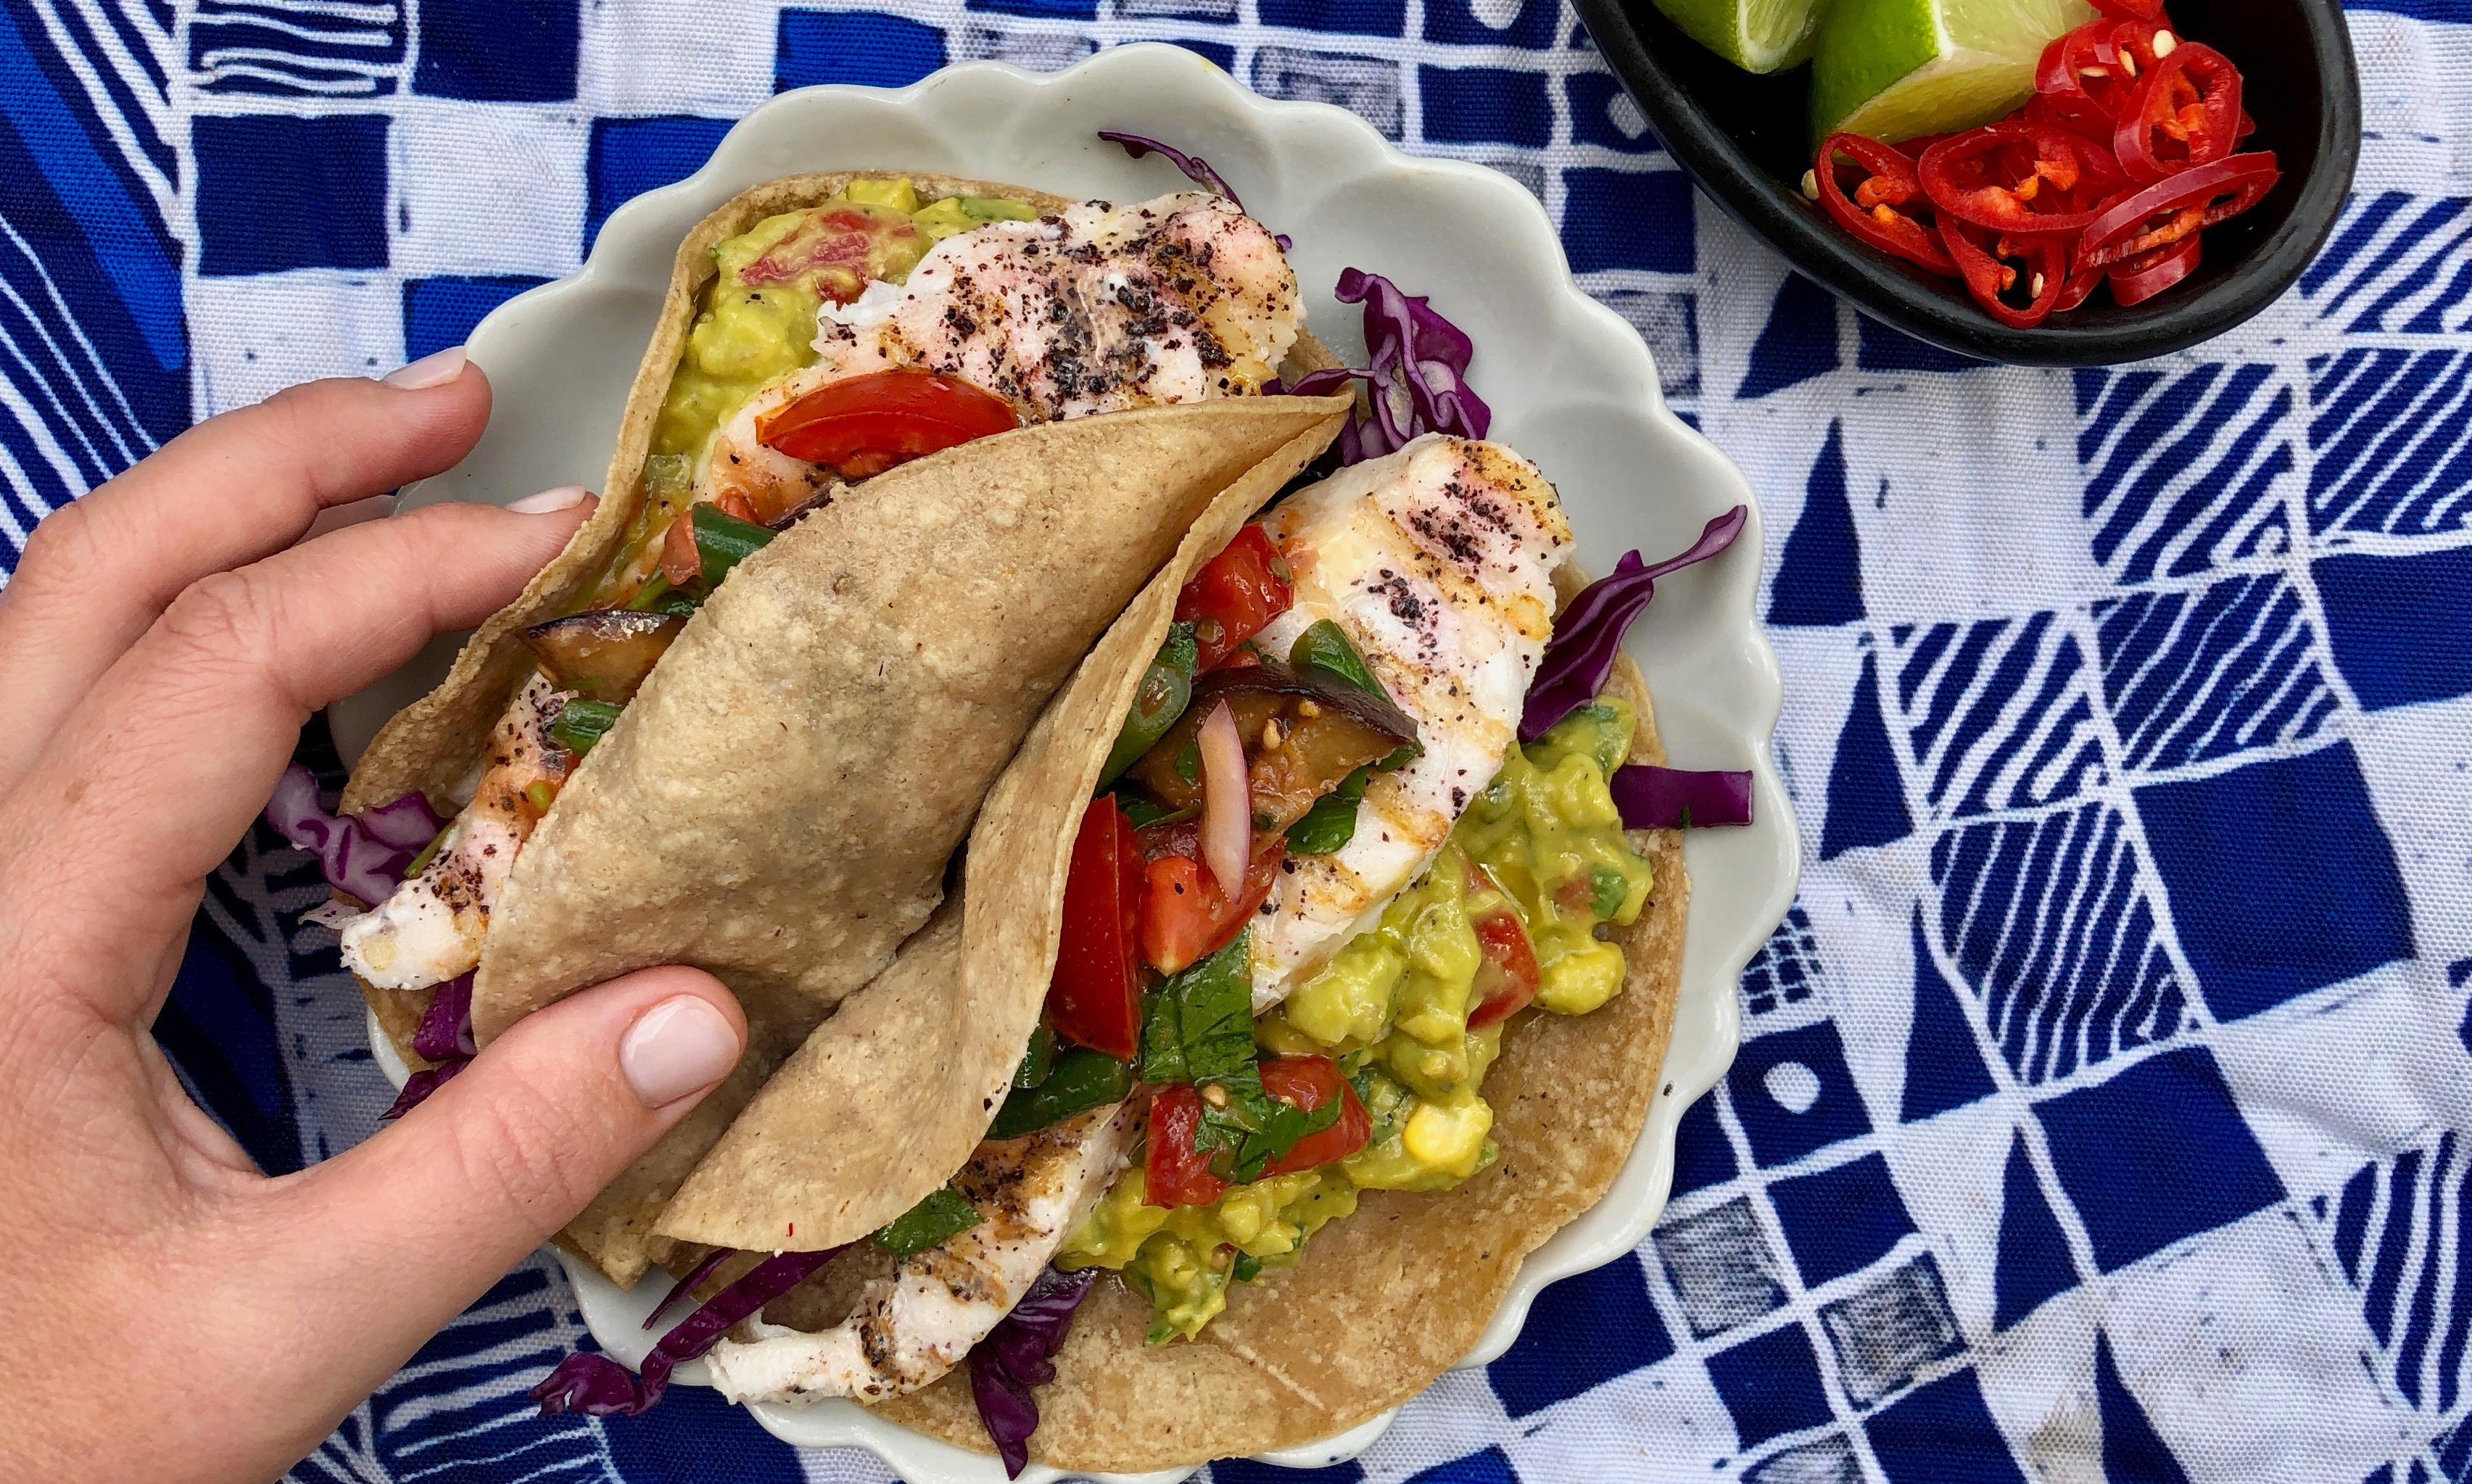 Weeknight dinner: easy fish tacos with salsa and guacamole recipe